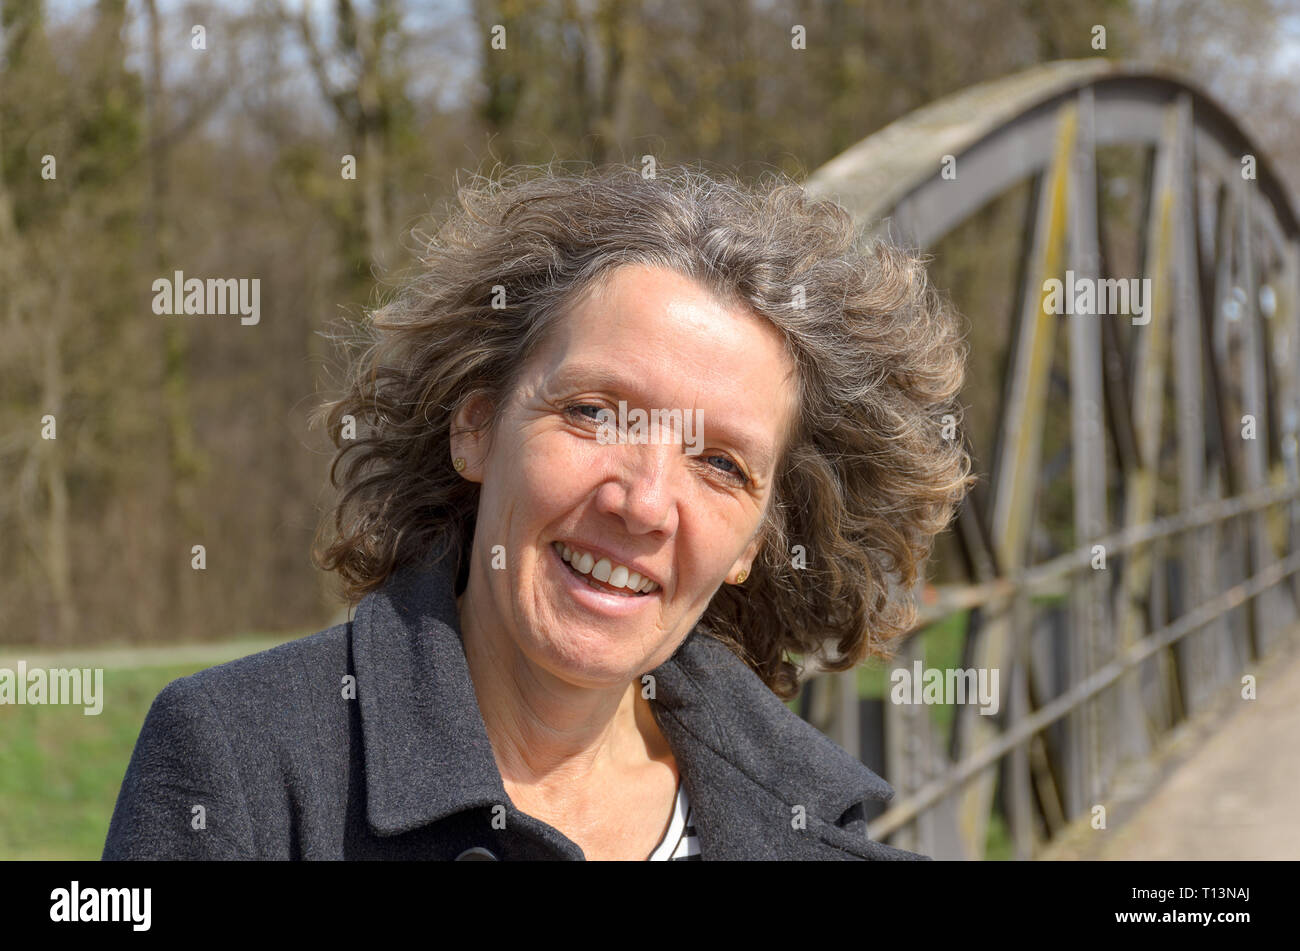 Smiling friendly woman with tousled hair standing on a bridge in the countryside in spring sunshine looking at camera with a happy smile - Stock Image